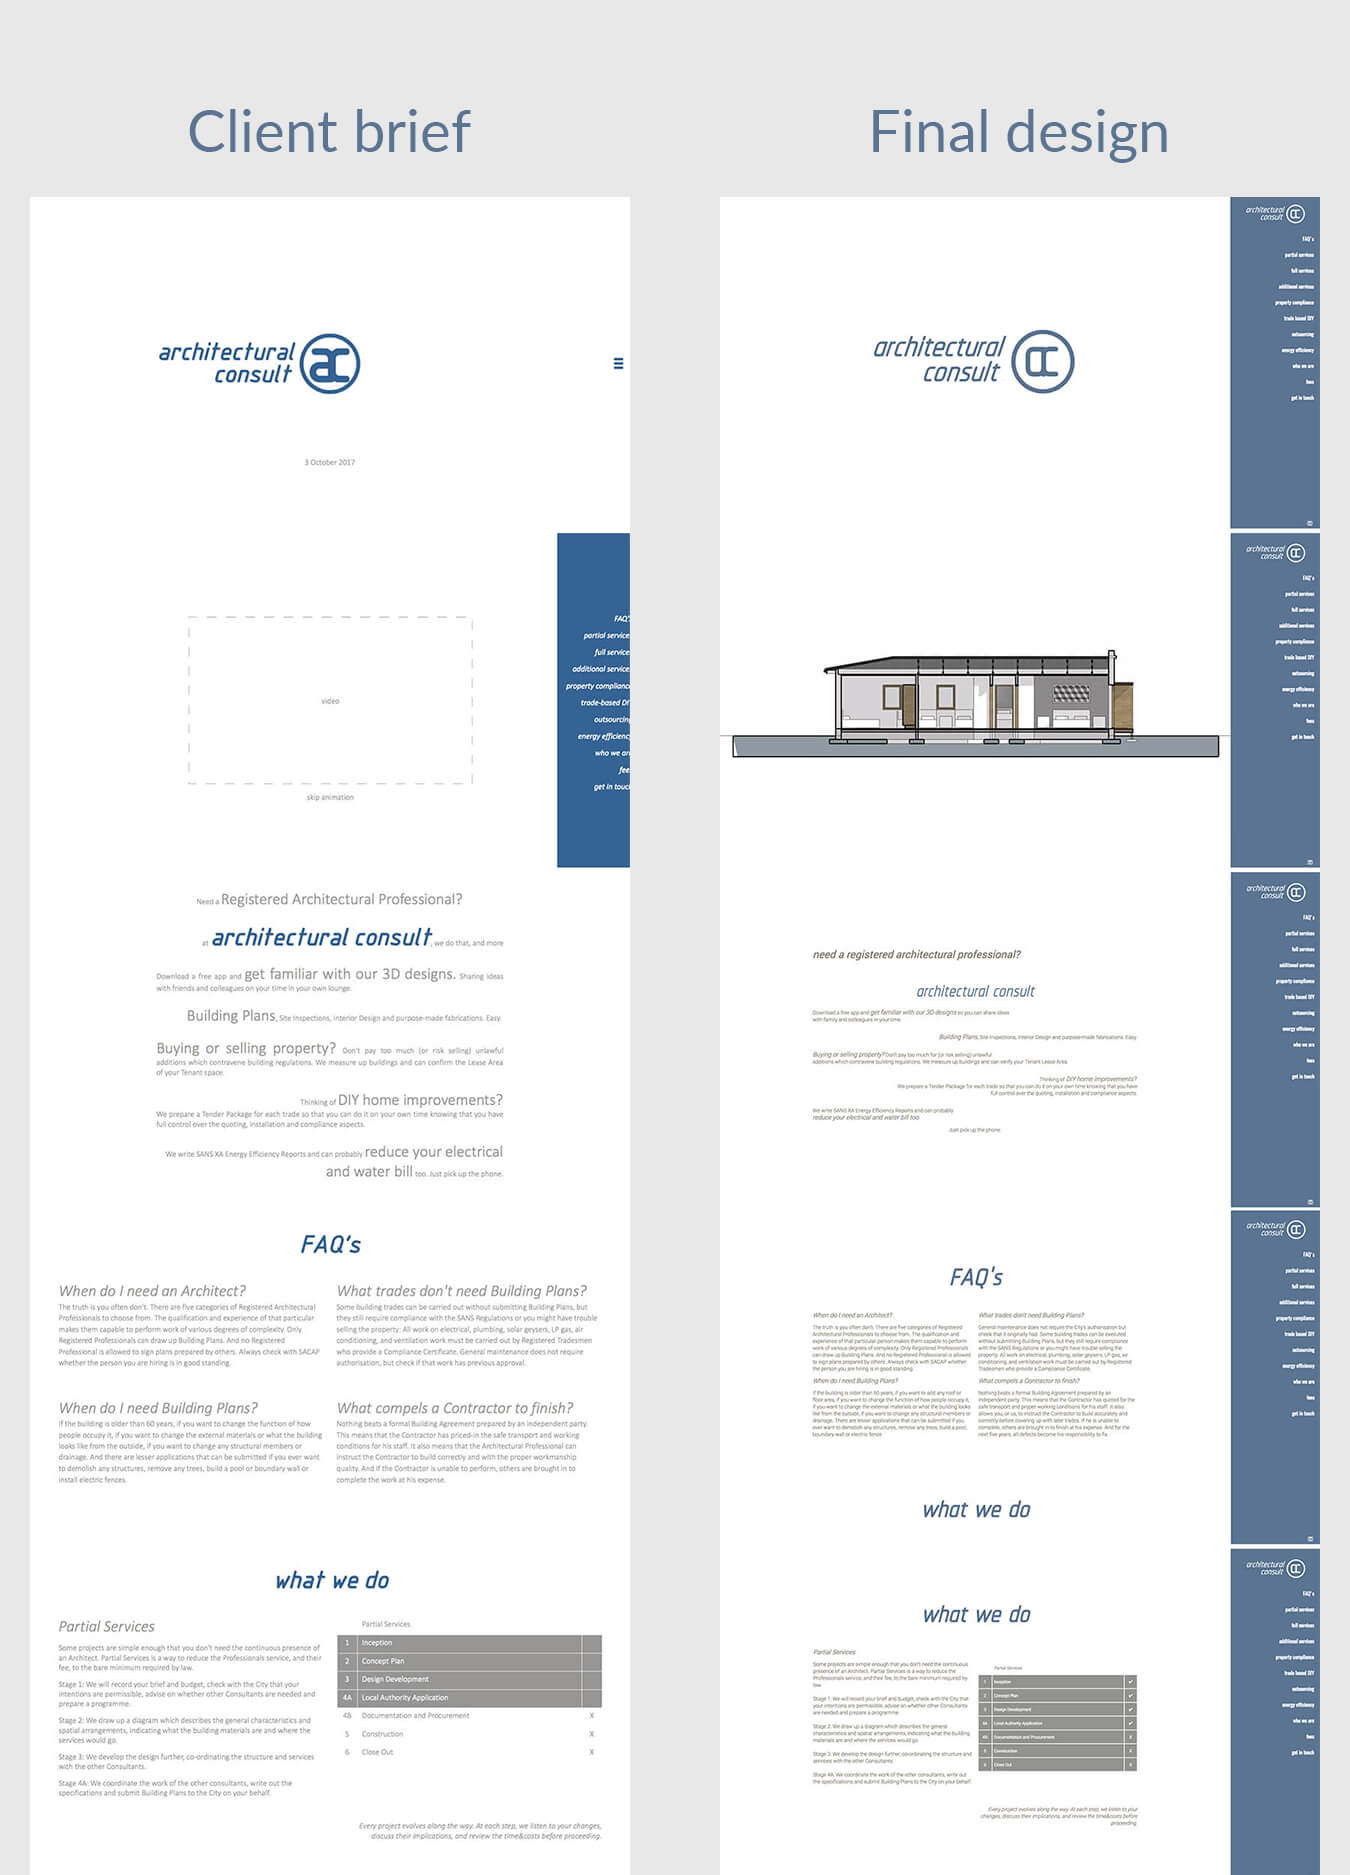 Image of the client brief and final design of architectural consult website